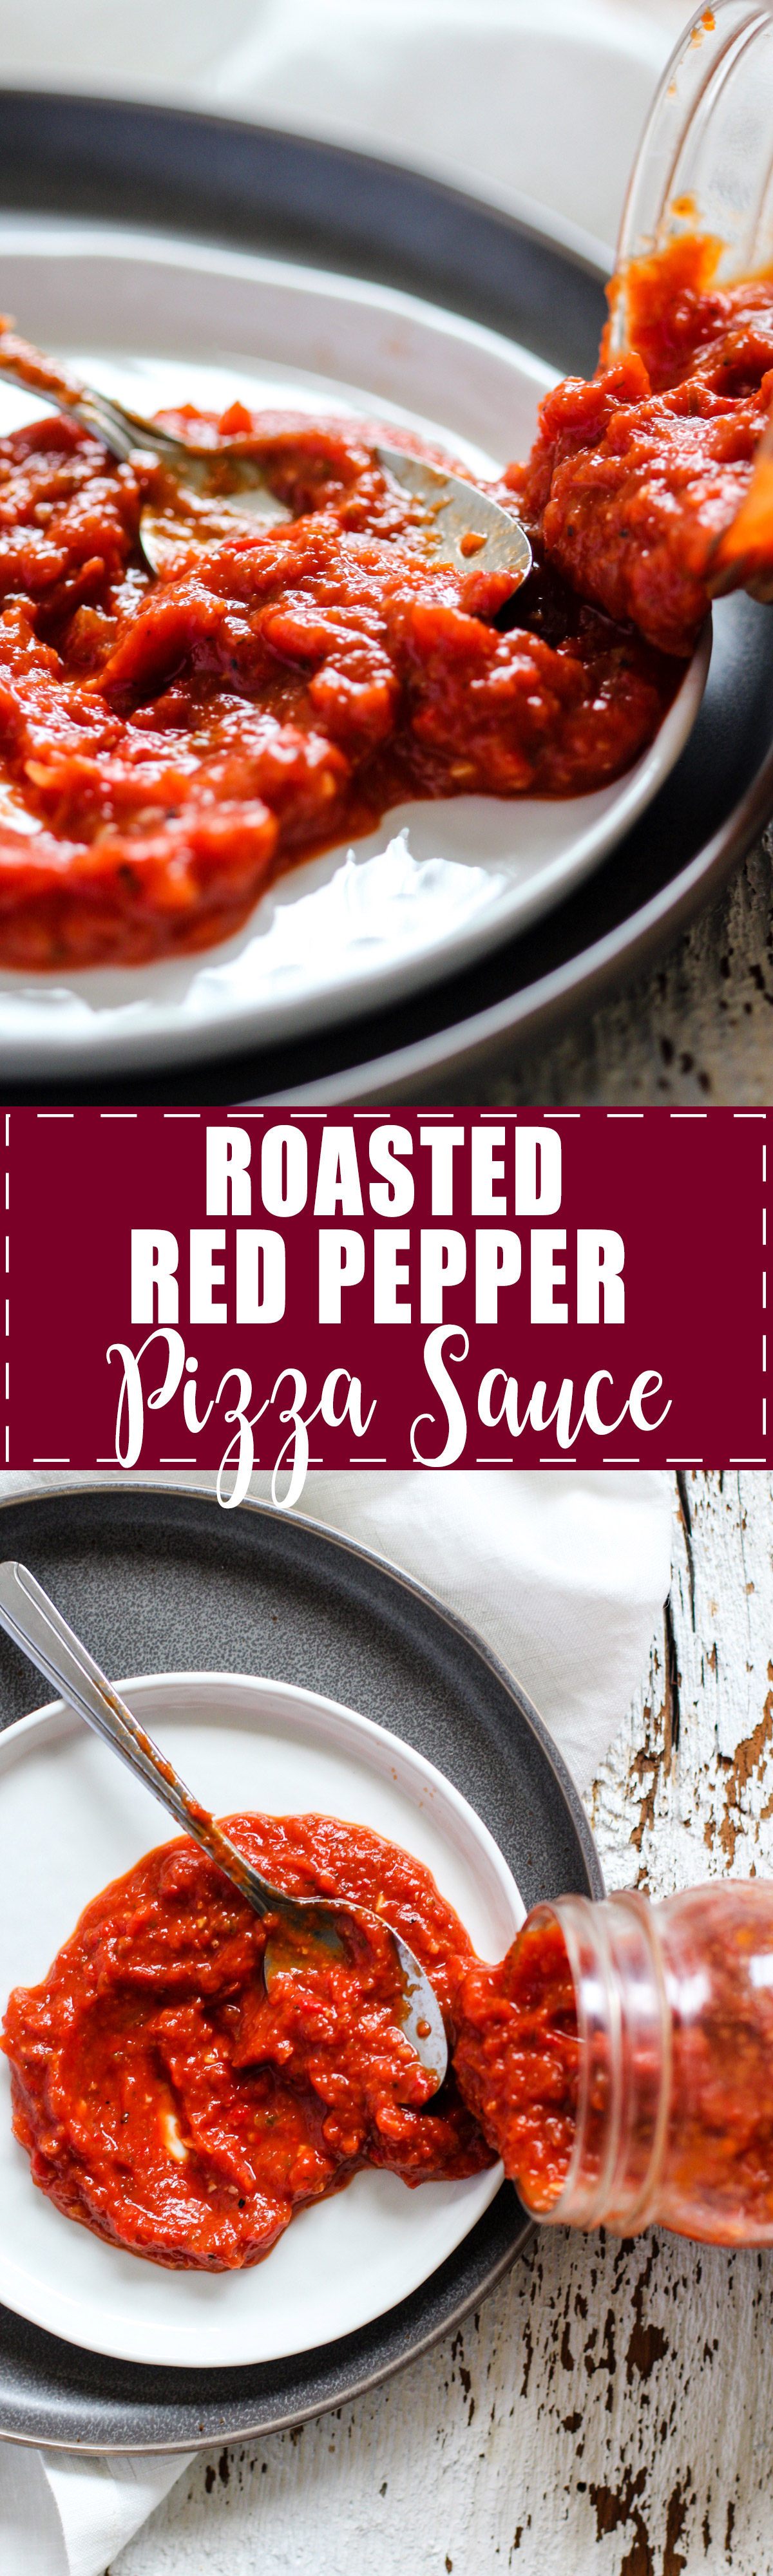 Roasted Red Pepper Pizza Sauce - Quick and easy comfort food! Roasted red peppers, tomatoes, garlic, olive oil, and oregano. Make ahead for homemade pizza on any day of the week! Recipe on rootsandradishes.com